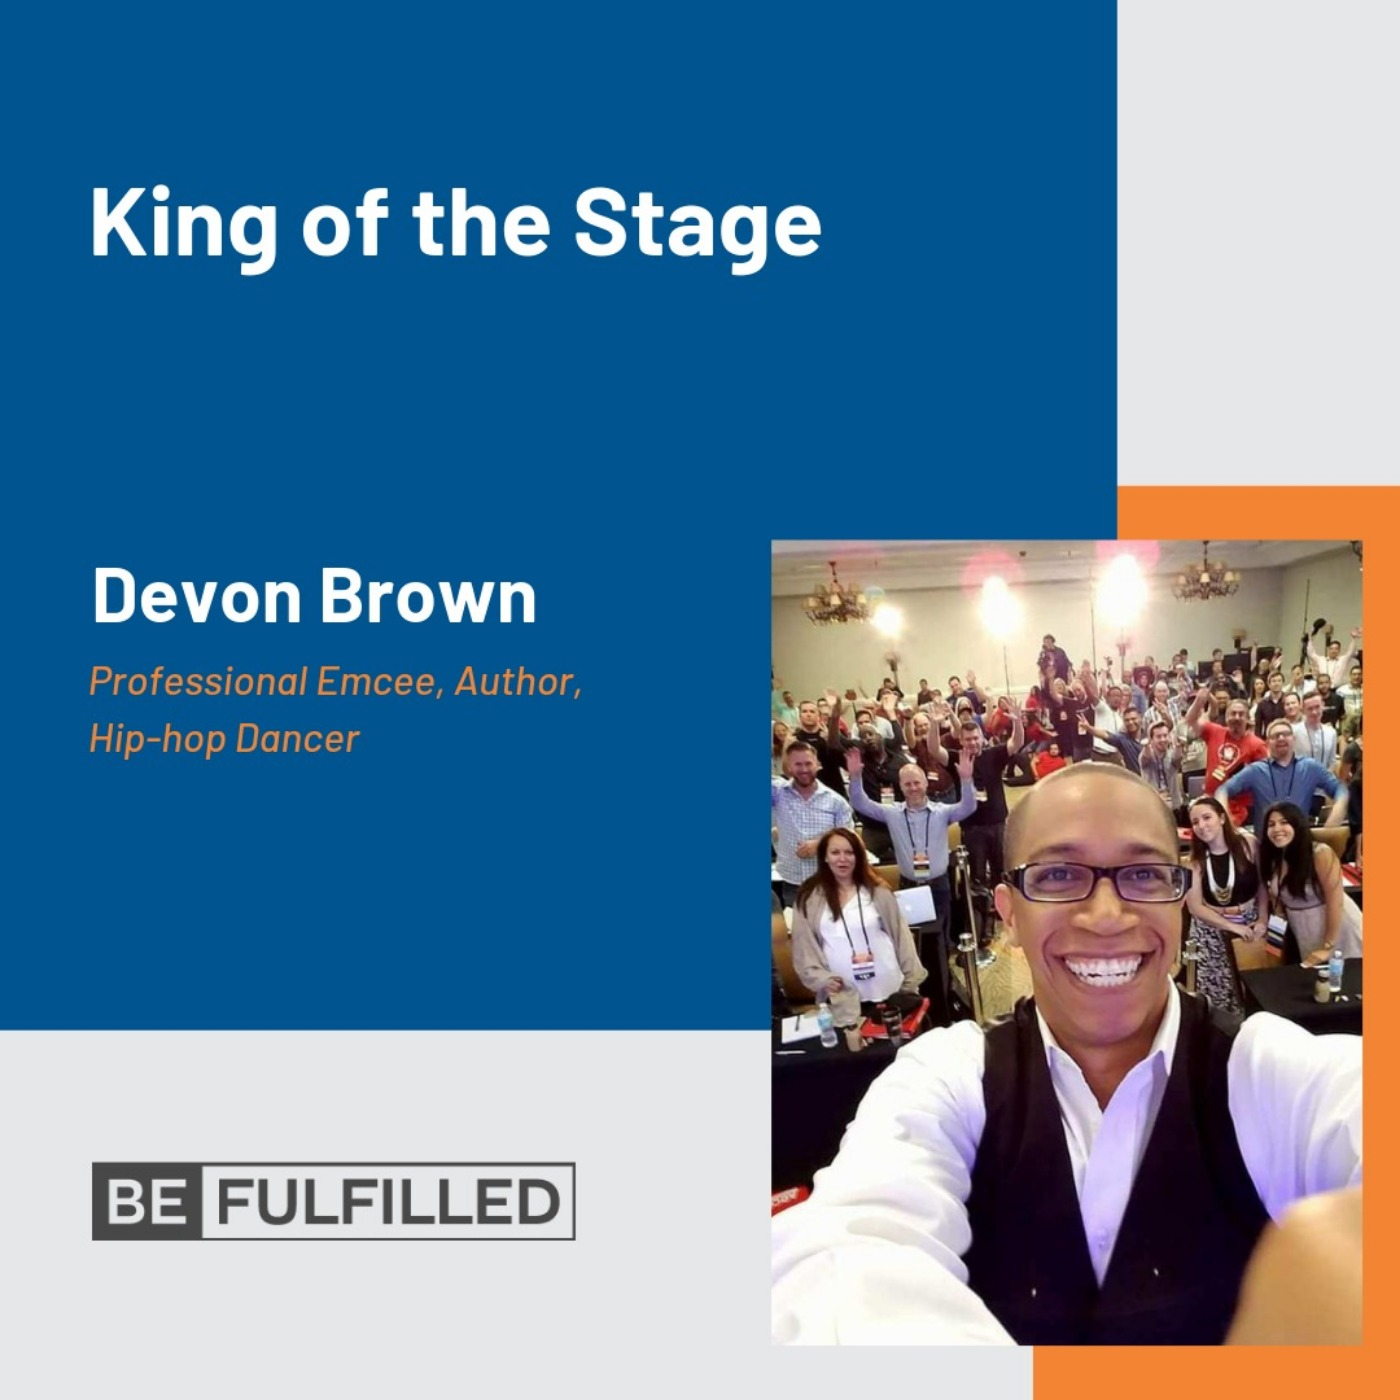 King of the Stage - Devon Brown